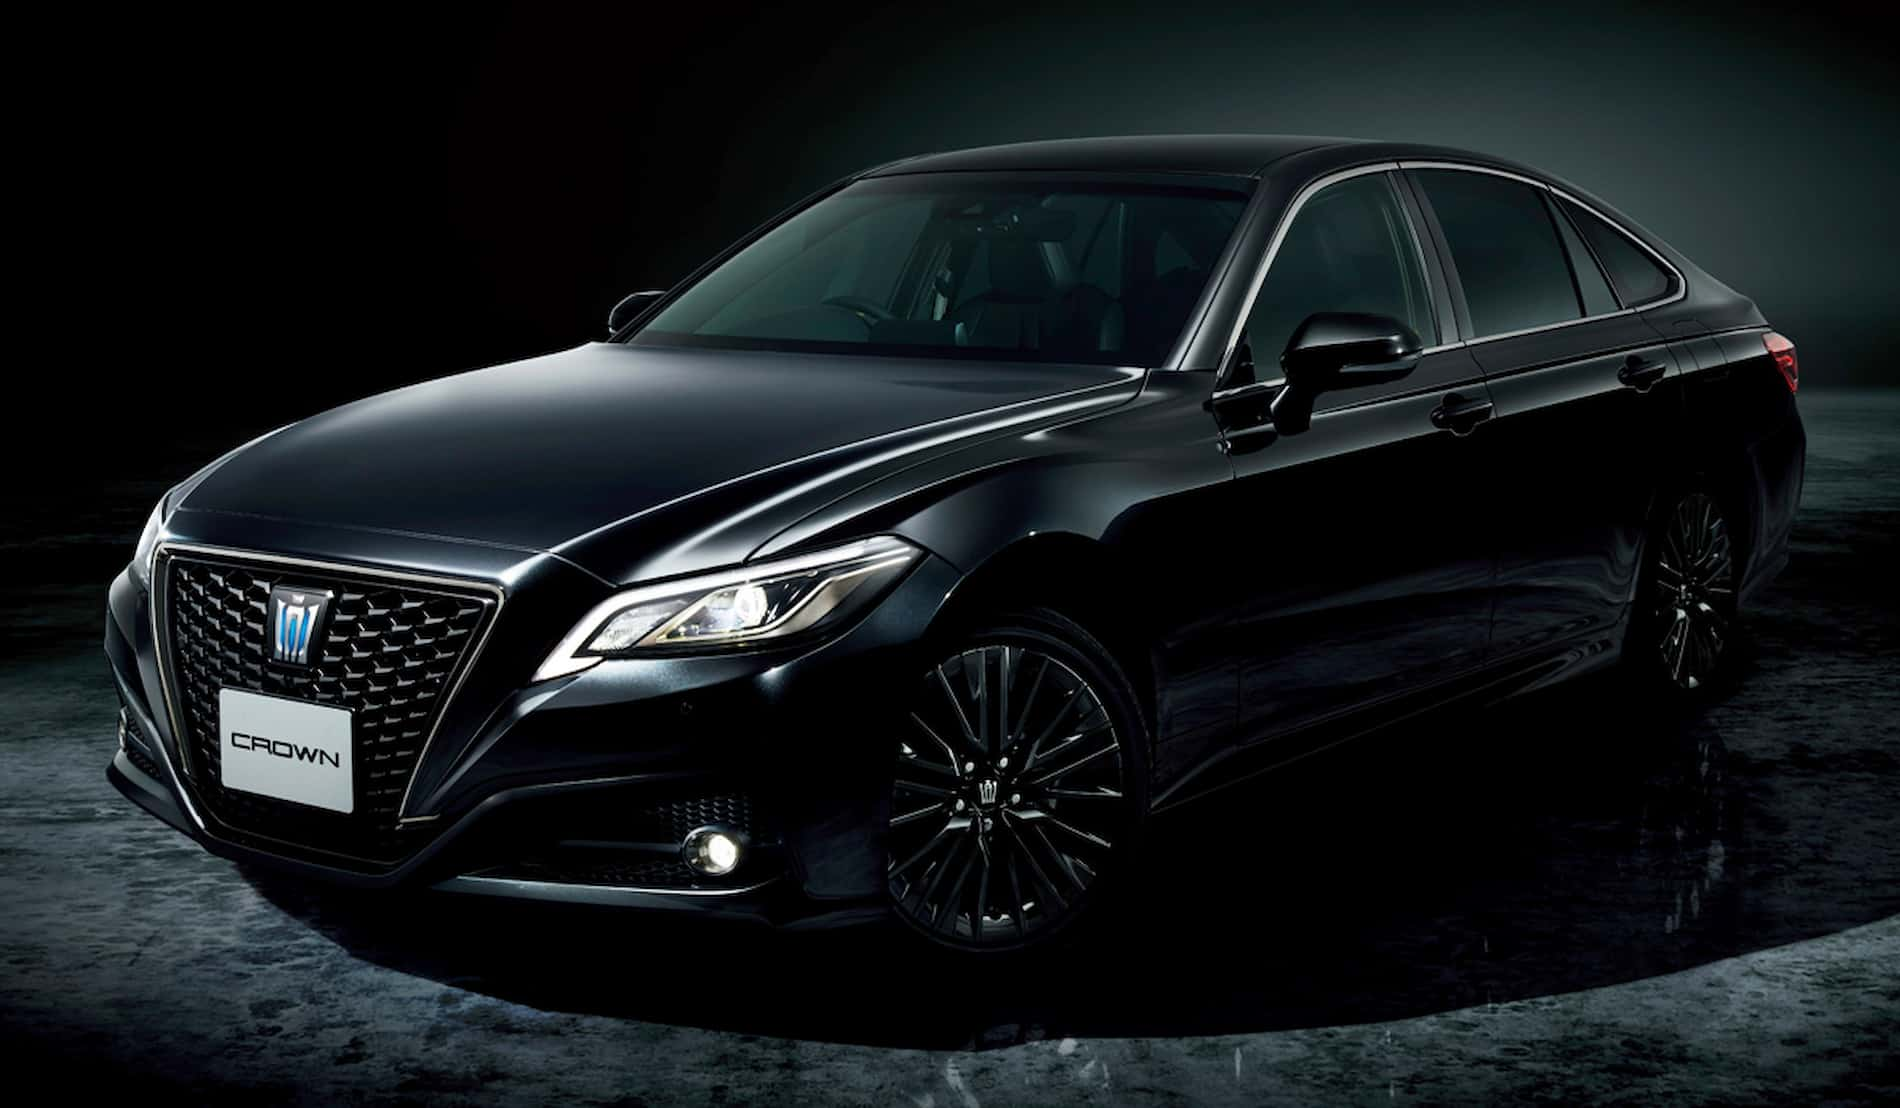 toyota crown sport style1